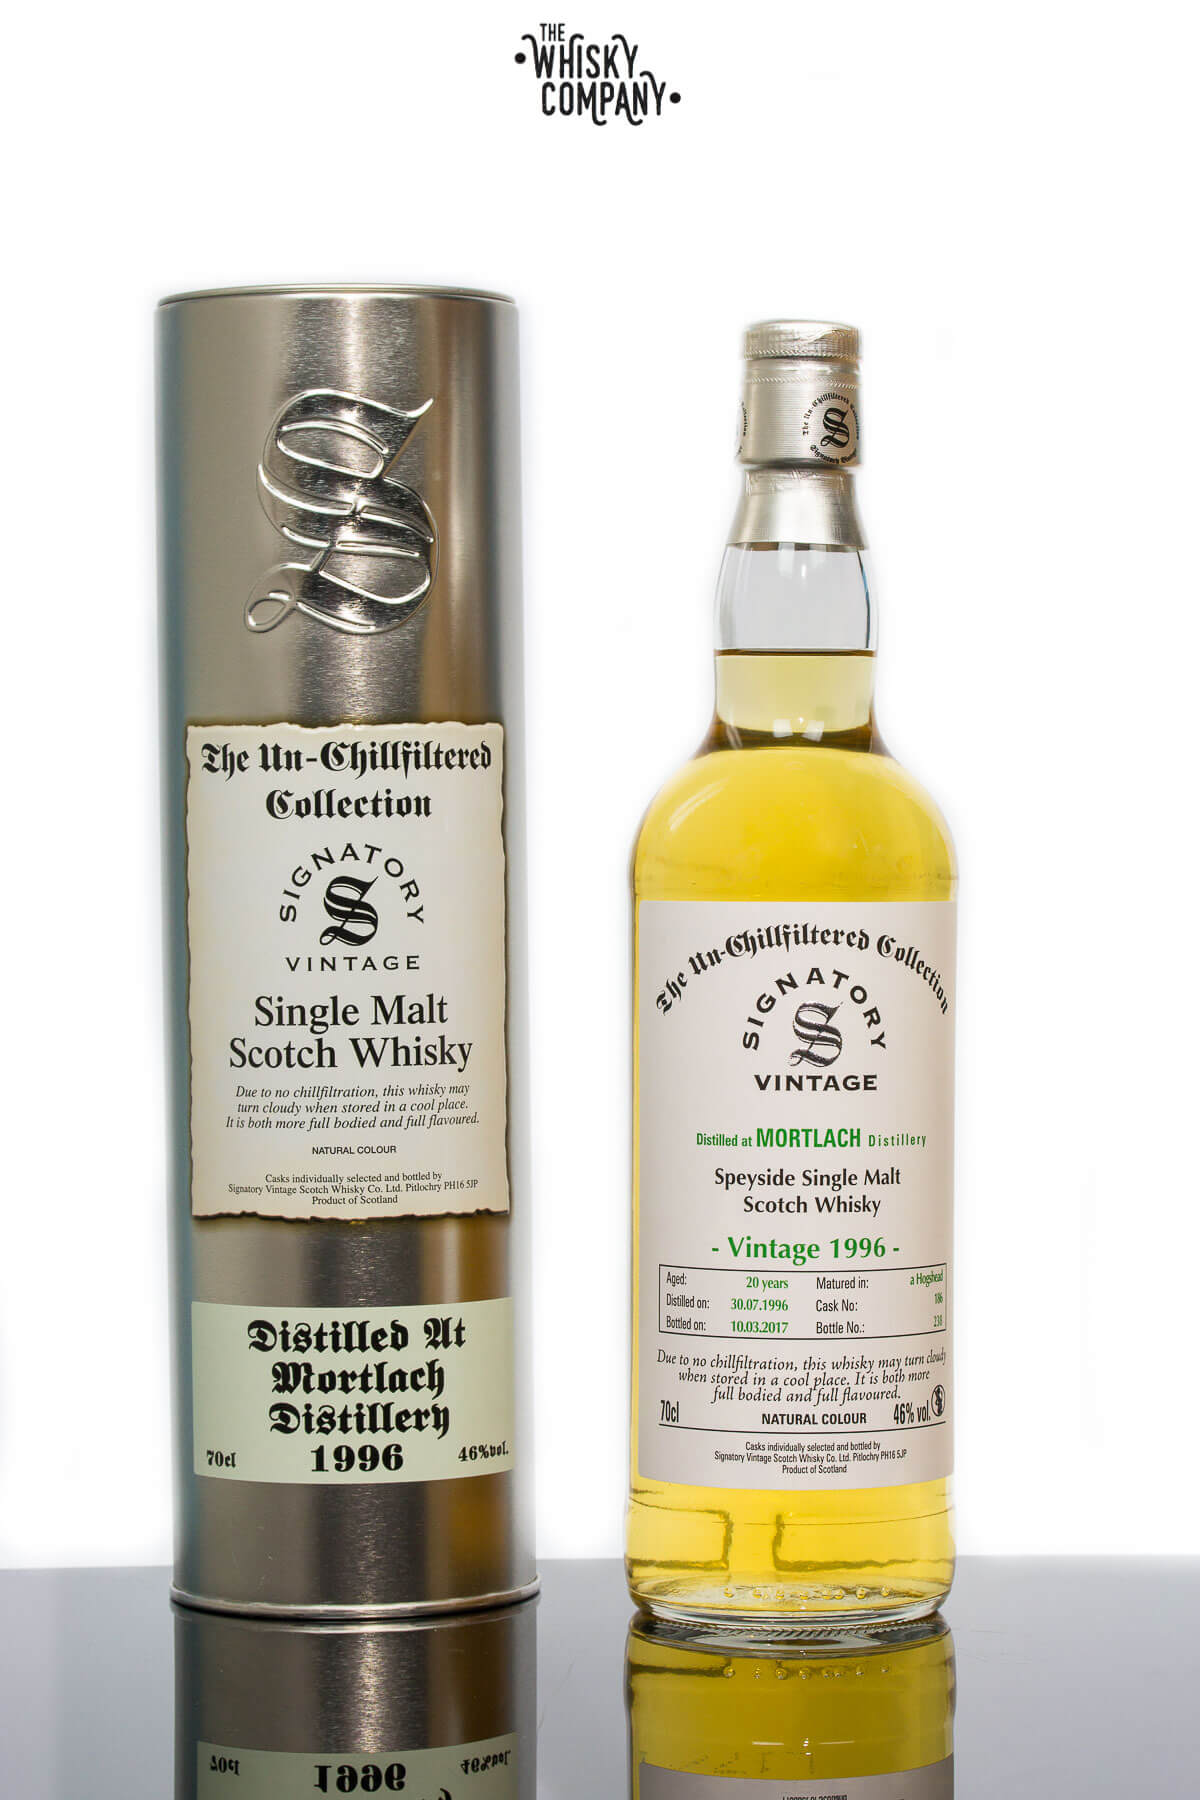 Mortlach 1996 Aged 20 Years - Signatory Vintage